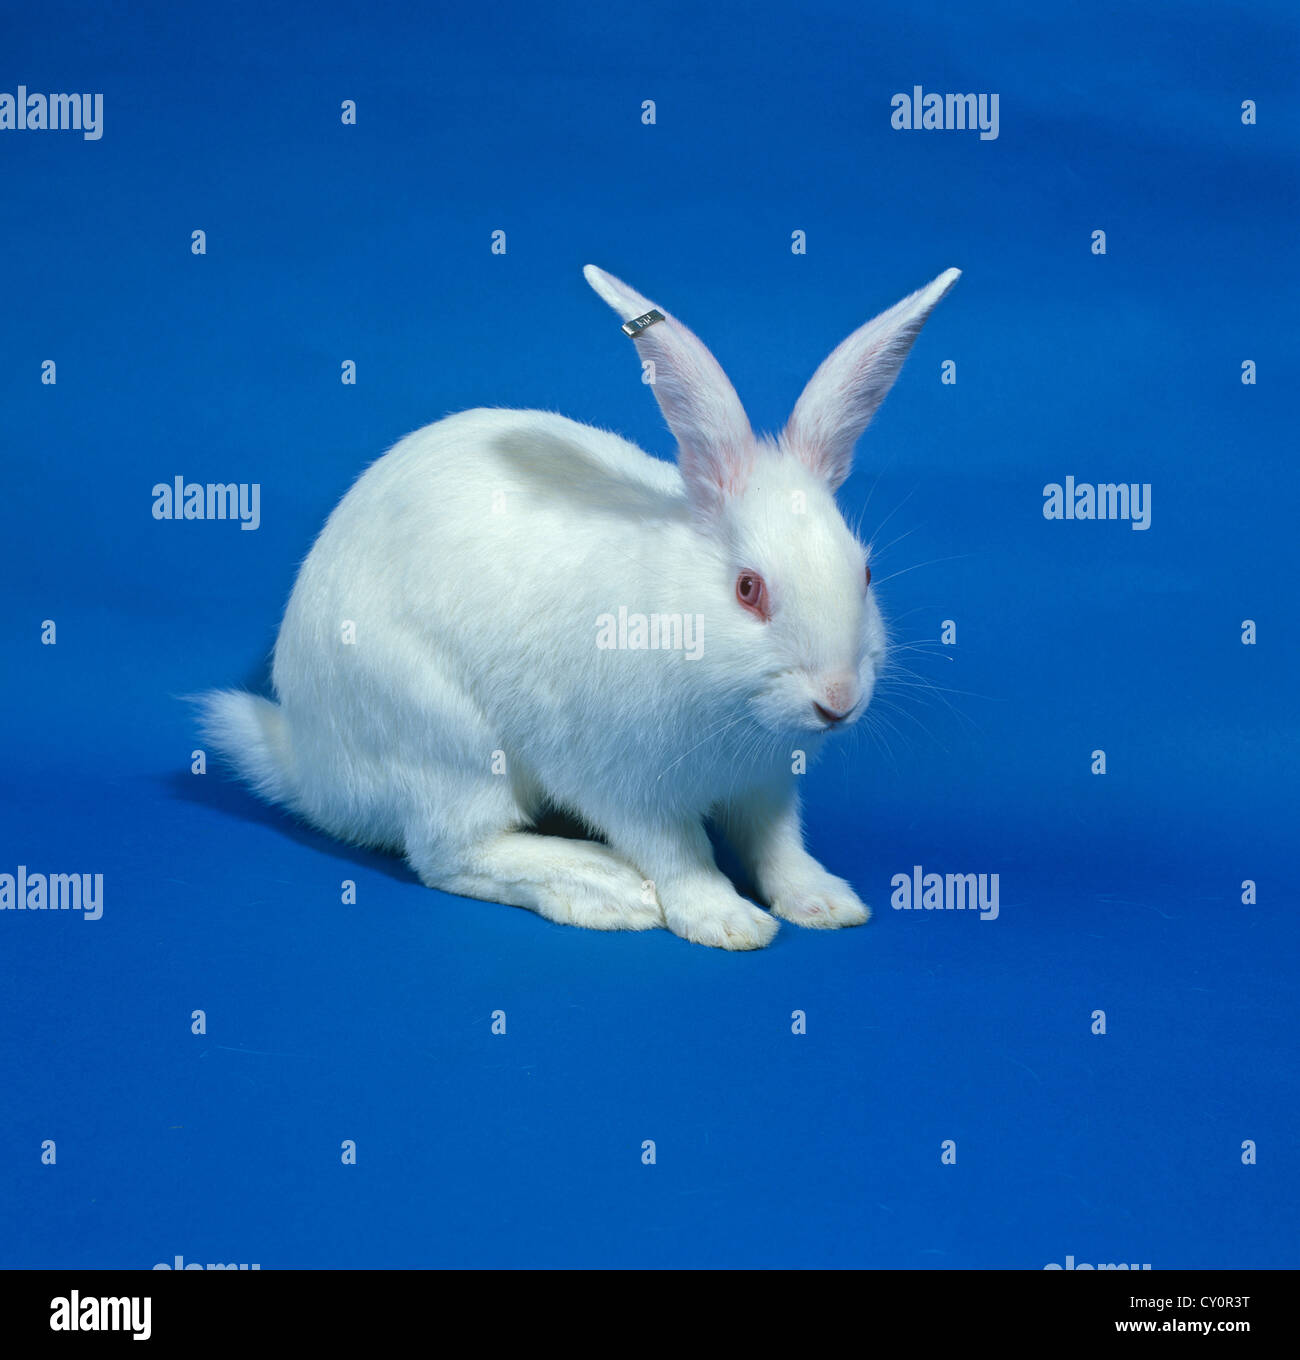 A White Laboratory Research Rabbit Breed New Zealand White